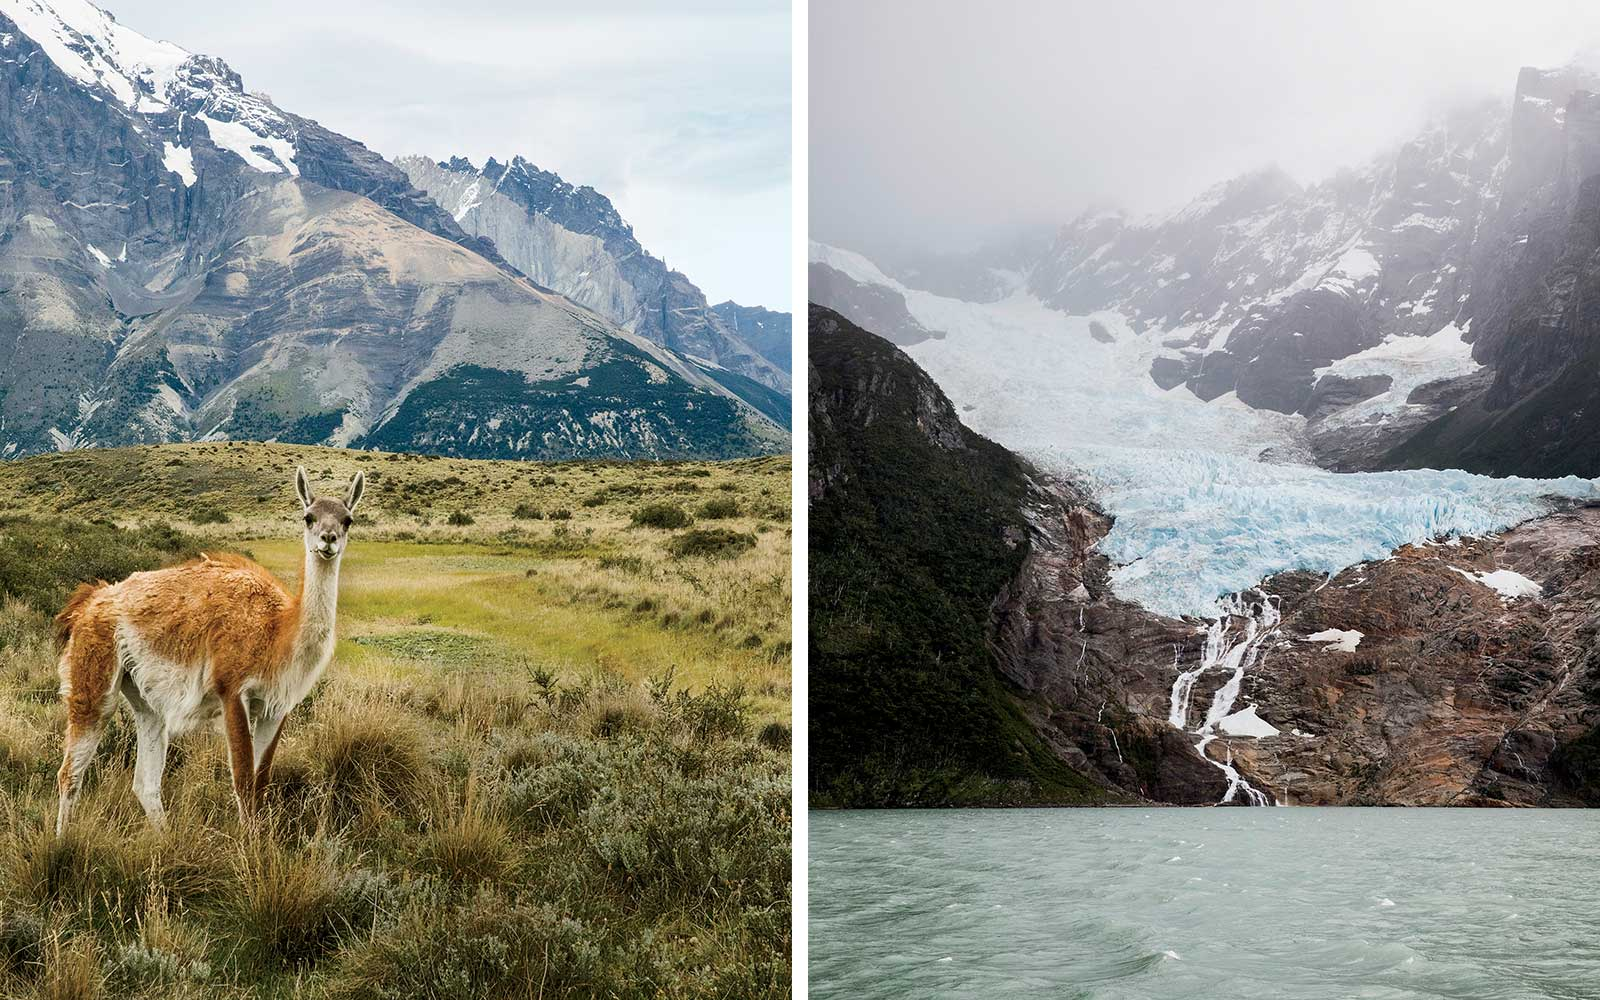 Glaciers and Guanacos in Patagonia